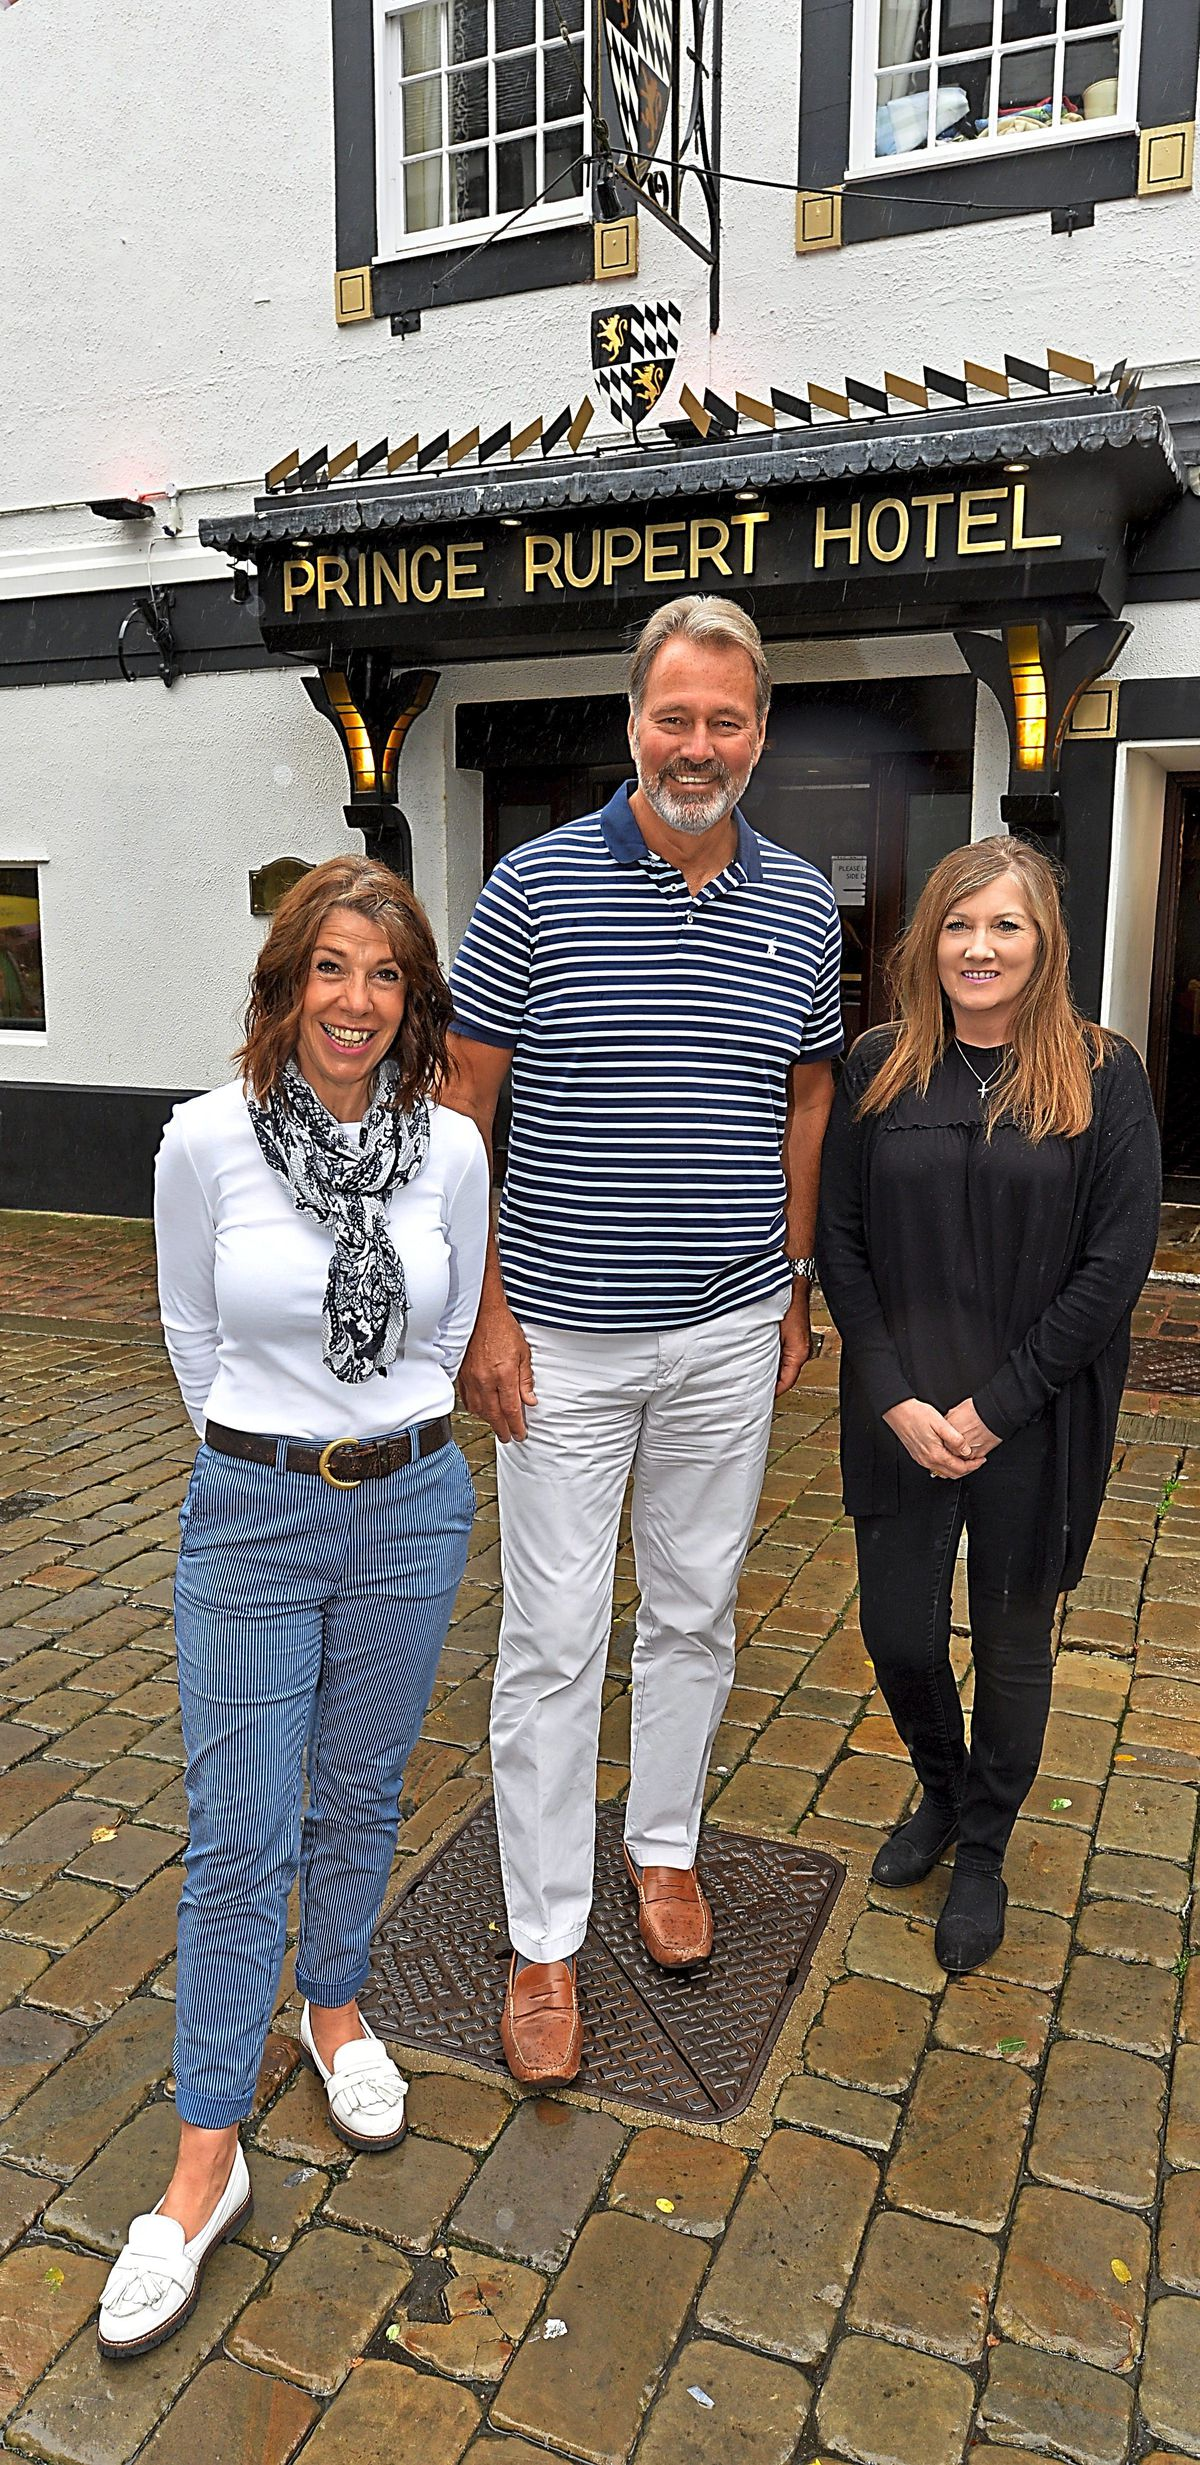 Staff at The Prince Rupert Hotel, Shrewsbury, who have not been home since March, from left, Charlie Green, Mike Matthews and Jacki Law